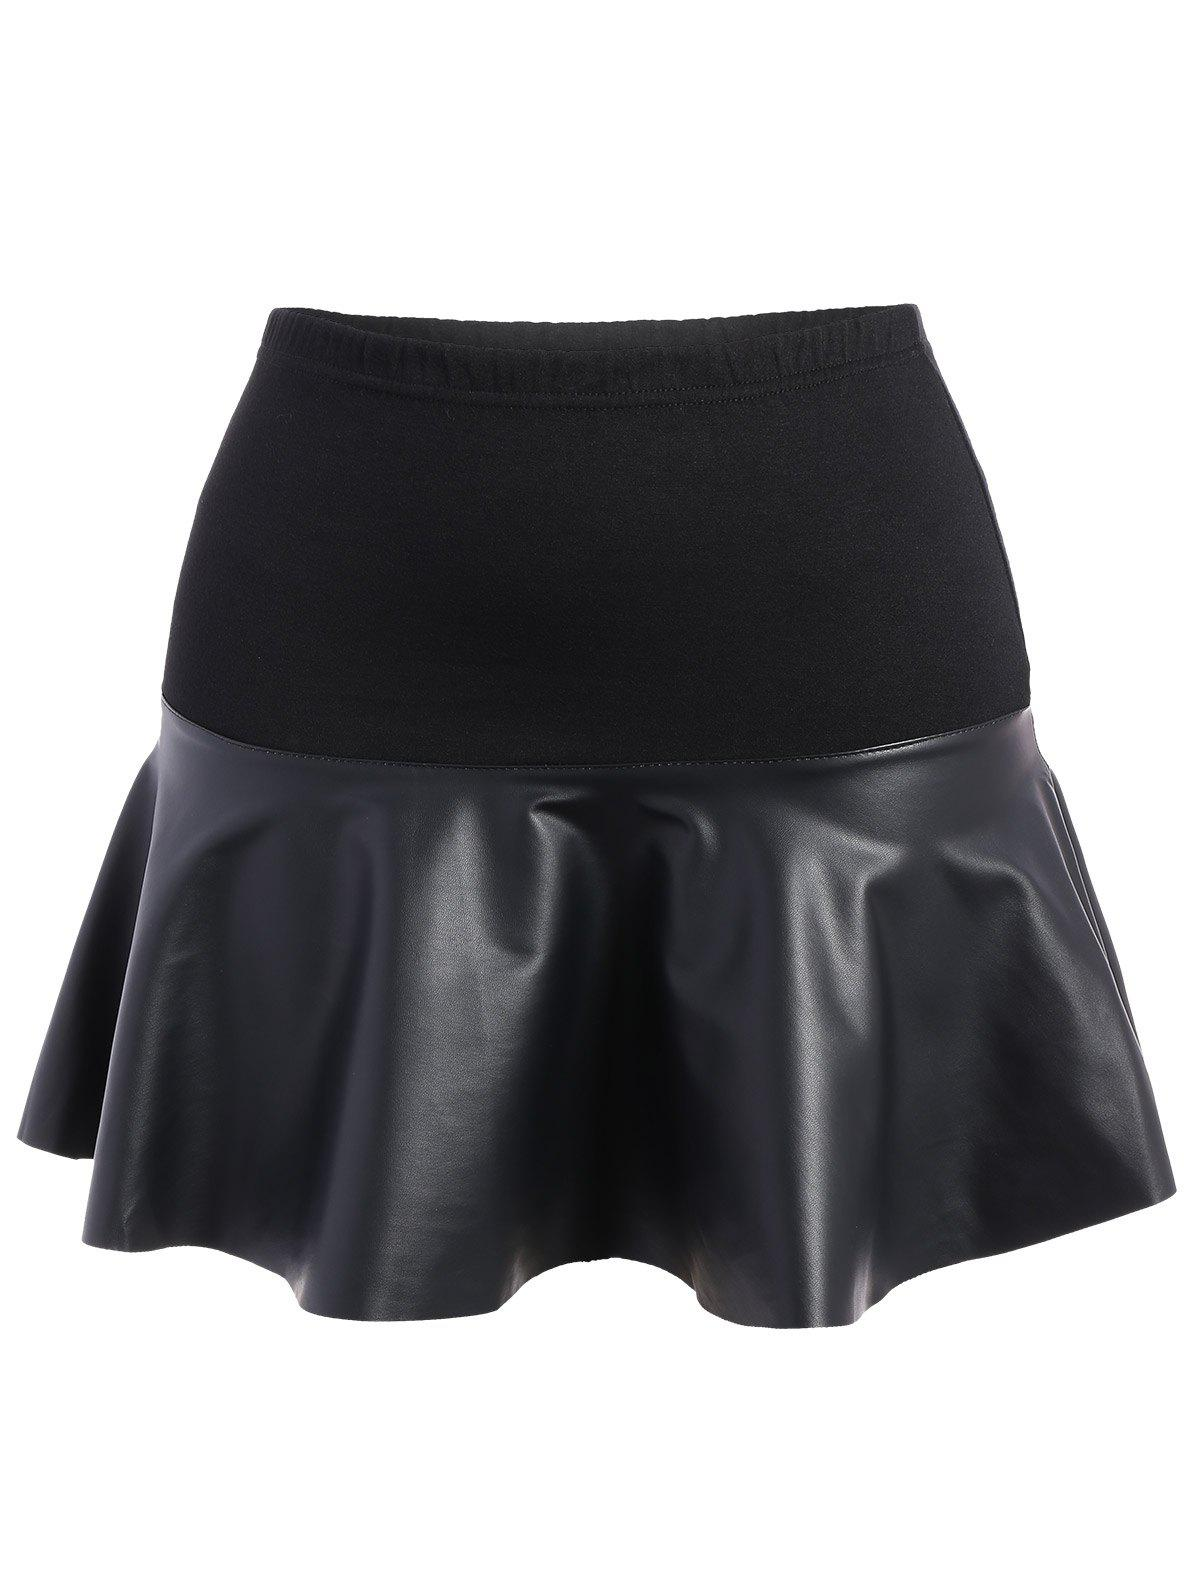 Plus Size Faux Leather Panel Skirt - BLACK 2XL